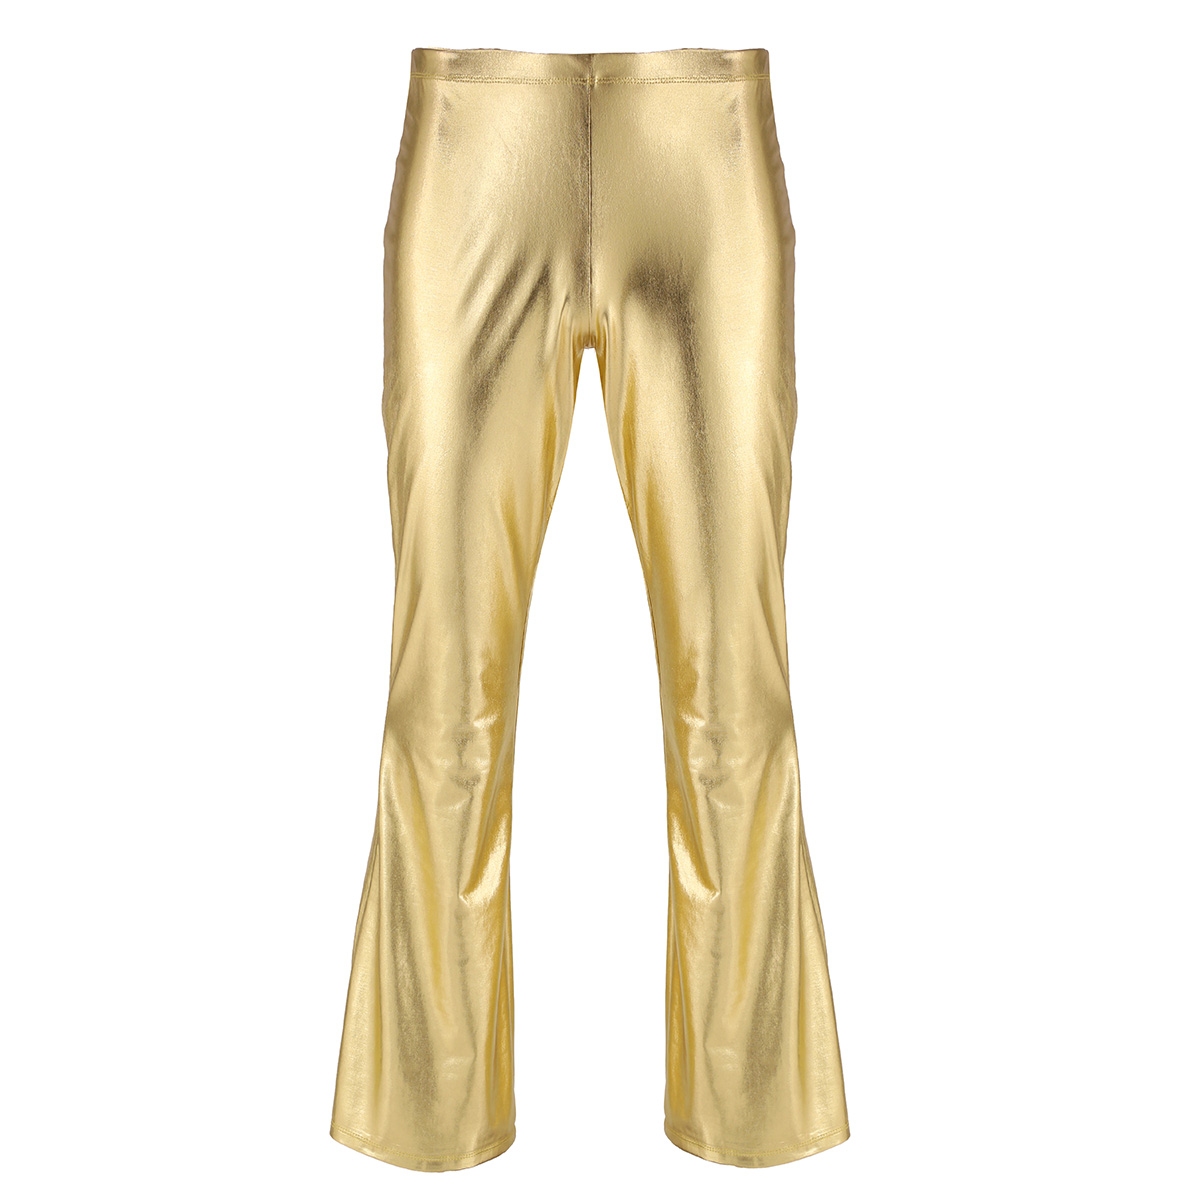 ChicTry Adults Mens Shiny Metallic Disco Pants with Bell Bottom Flared Long Pants Dude Costume Trousers for 70's Theme Parties 22